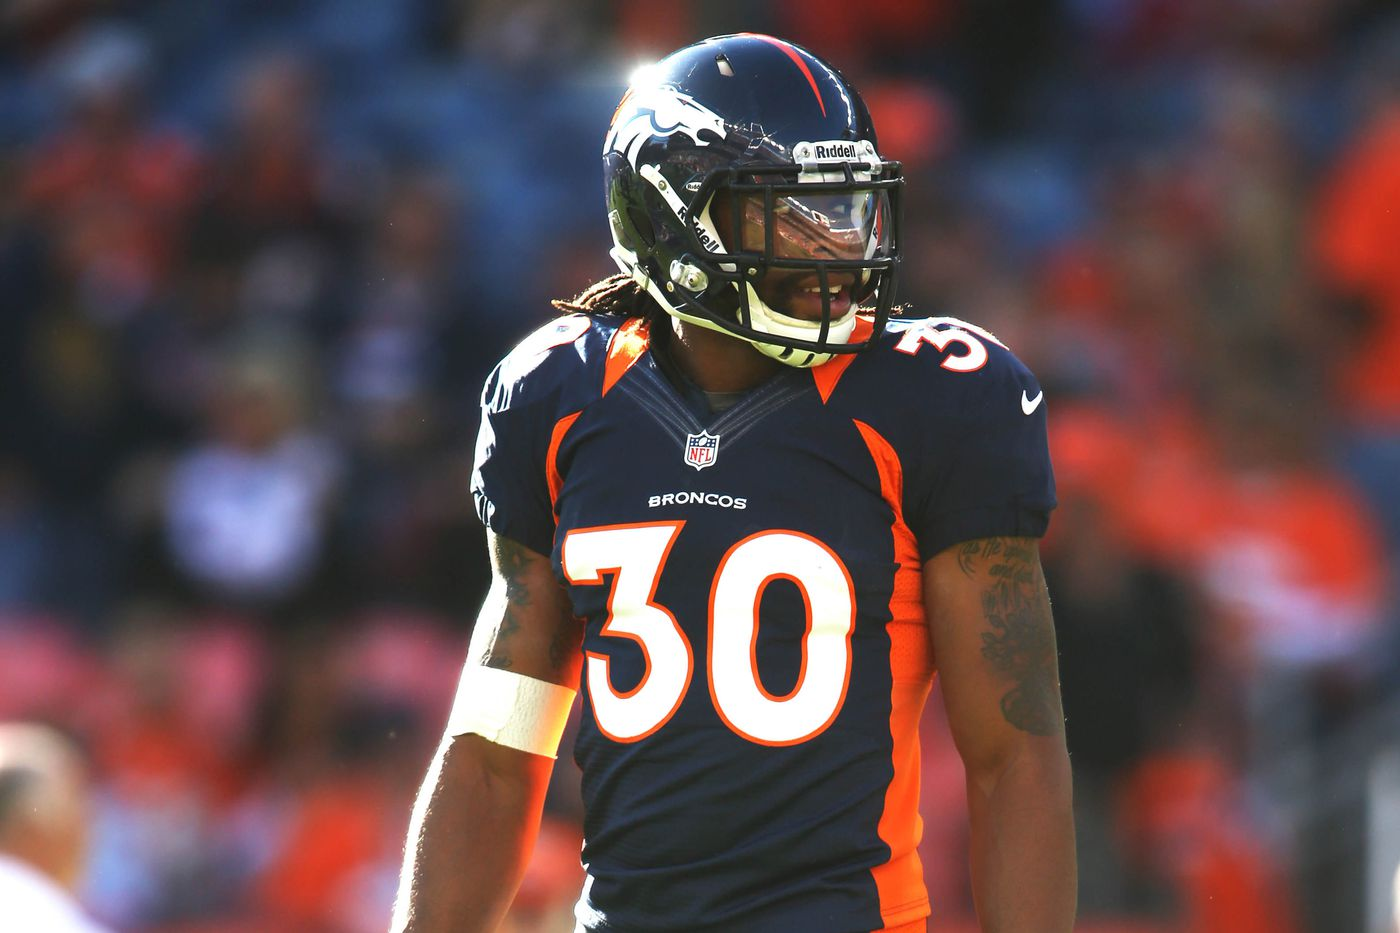 Scouting the Broncos Vets: David Bruton - Mile High Report